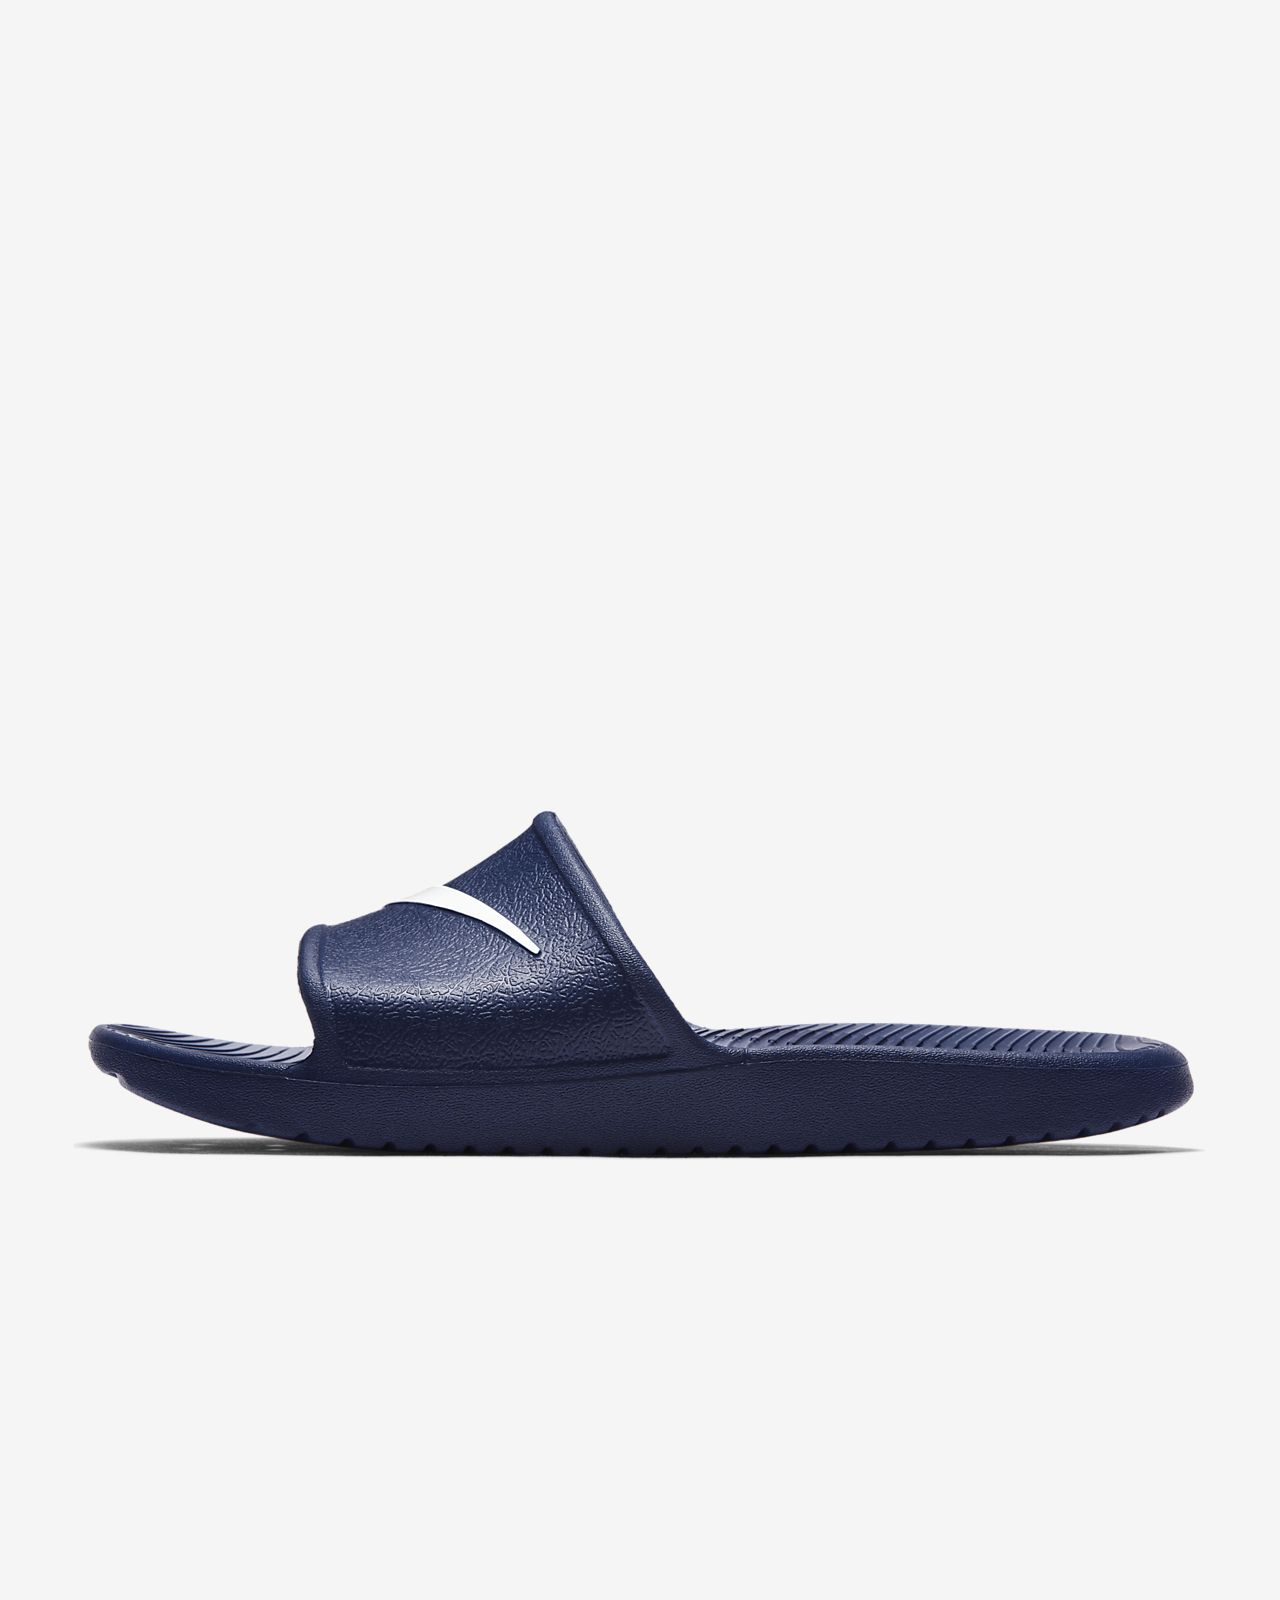 premium selection 1d2c3 9d65a Men s Slide. Nike Kawa Shower